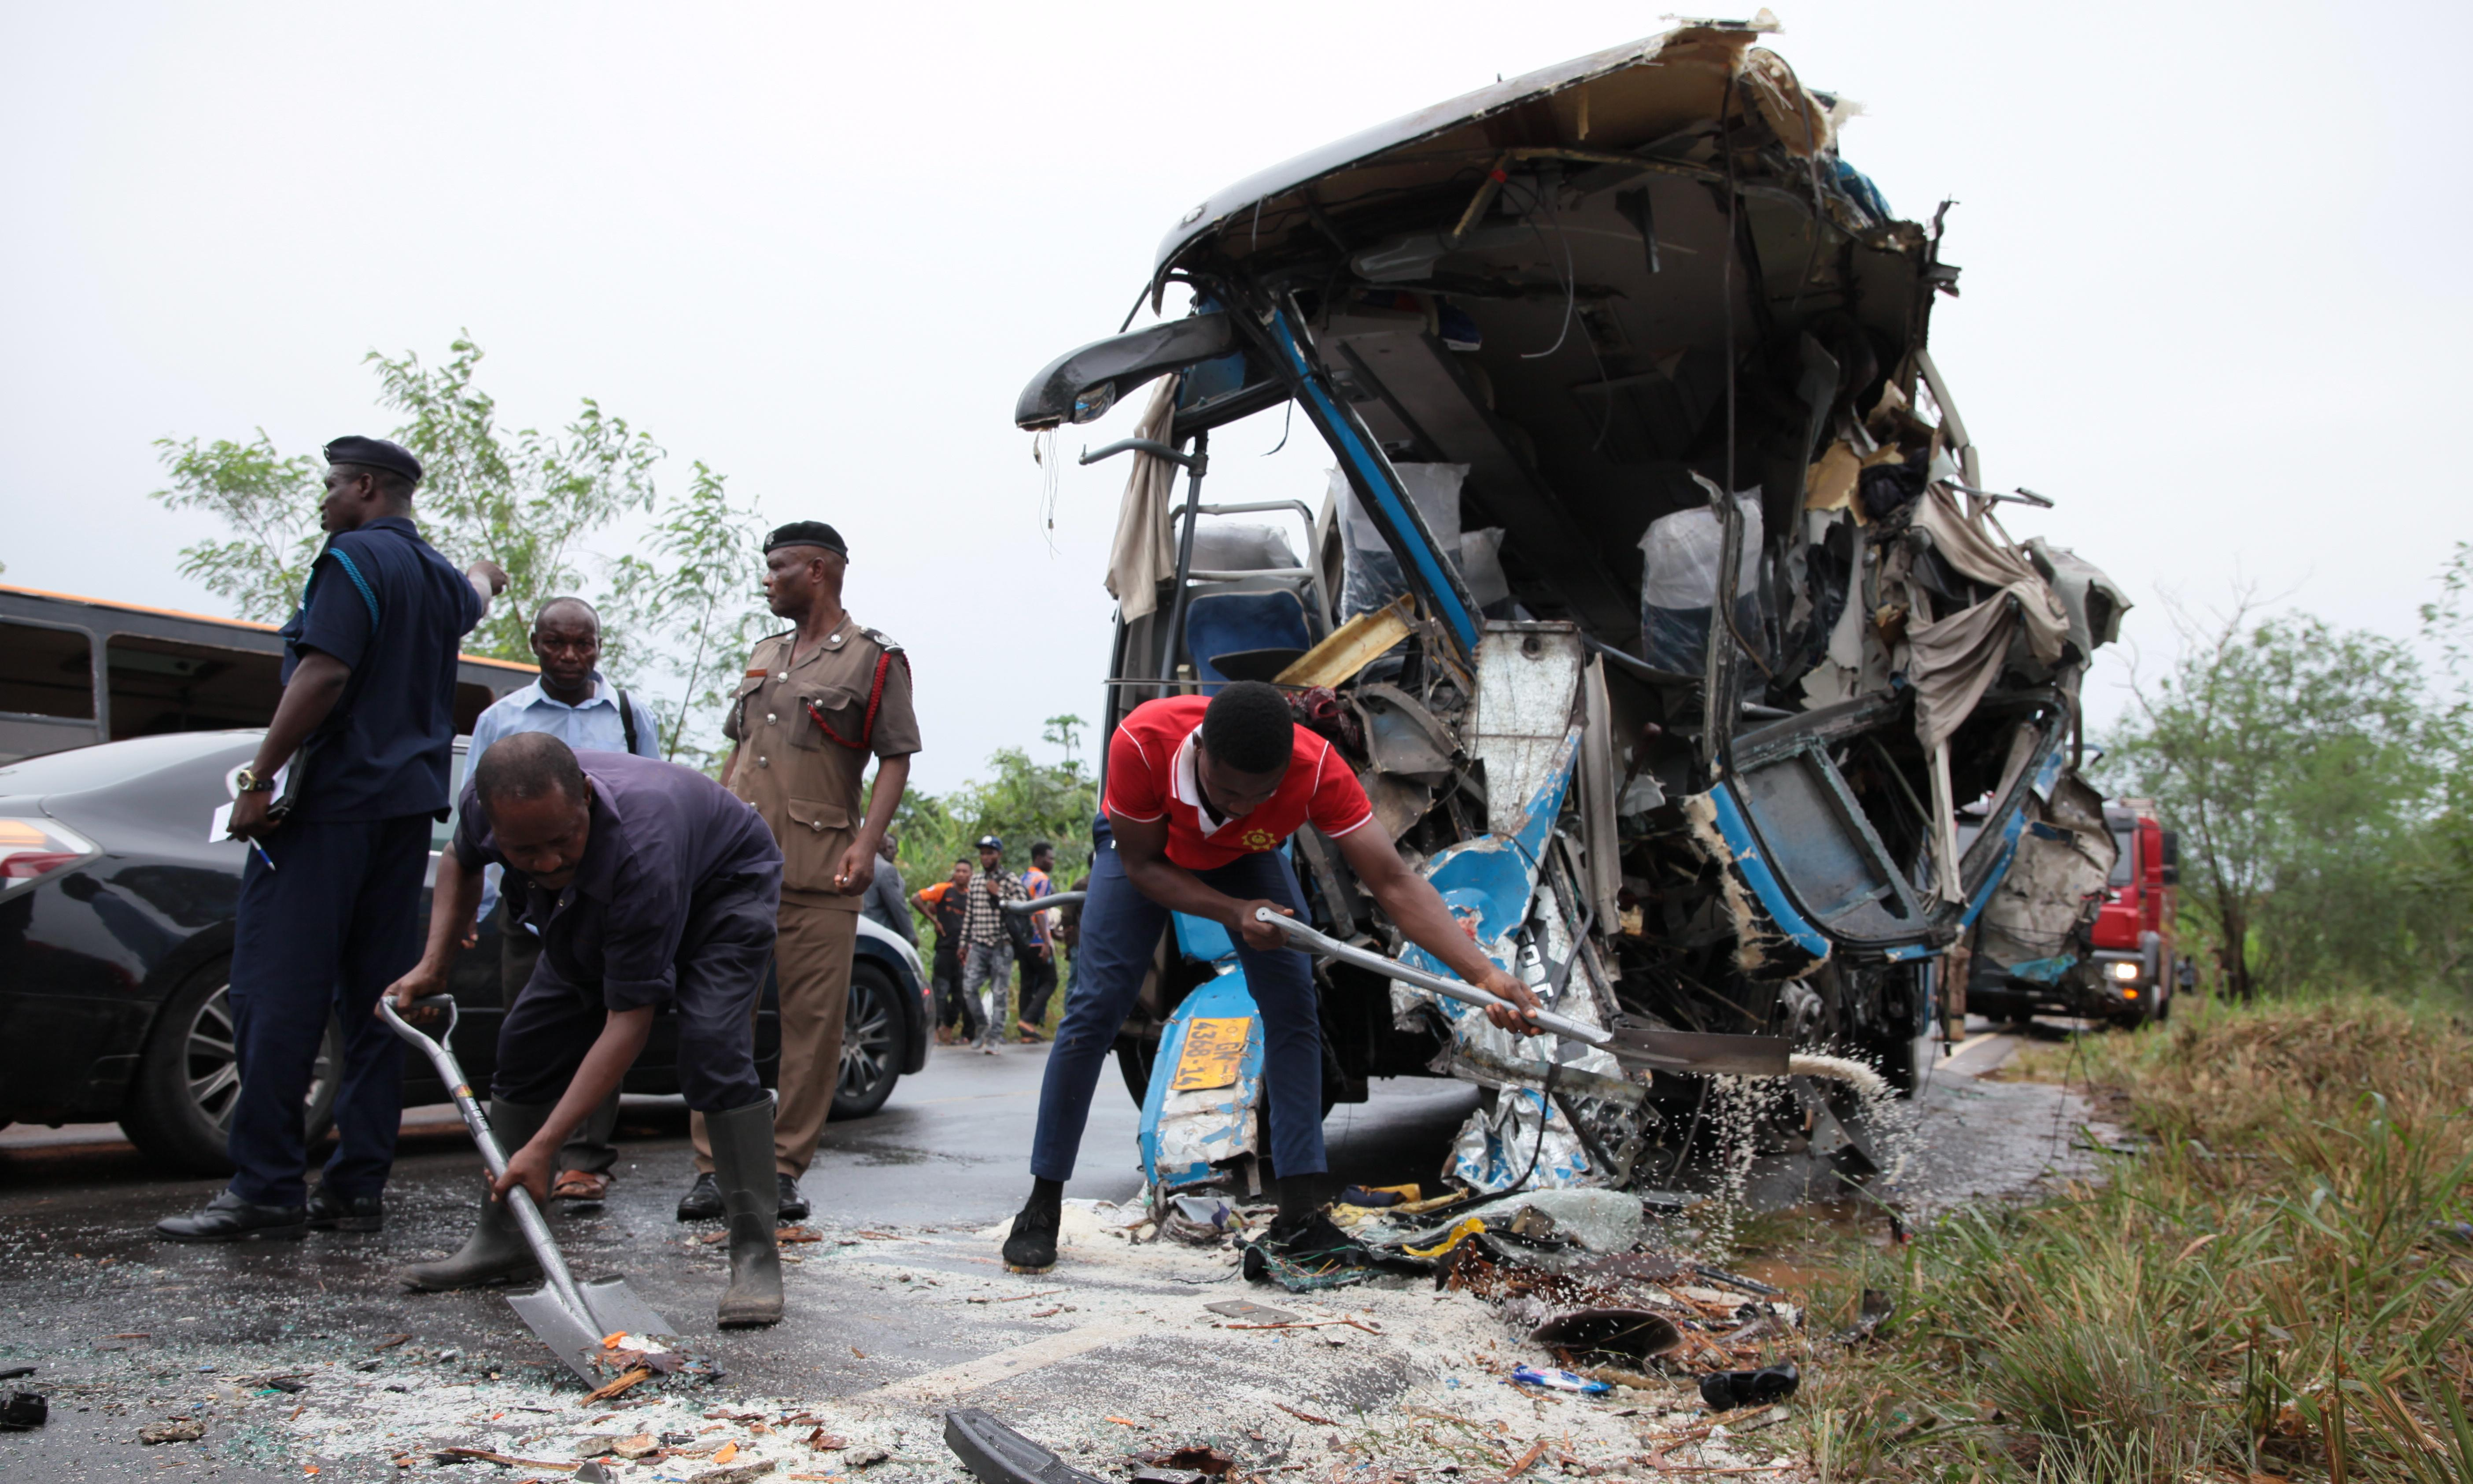 Ghana: at least 60 dead after two buses collide in Bono East